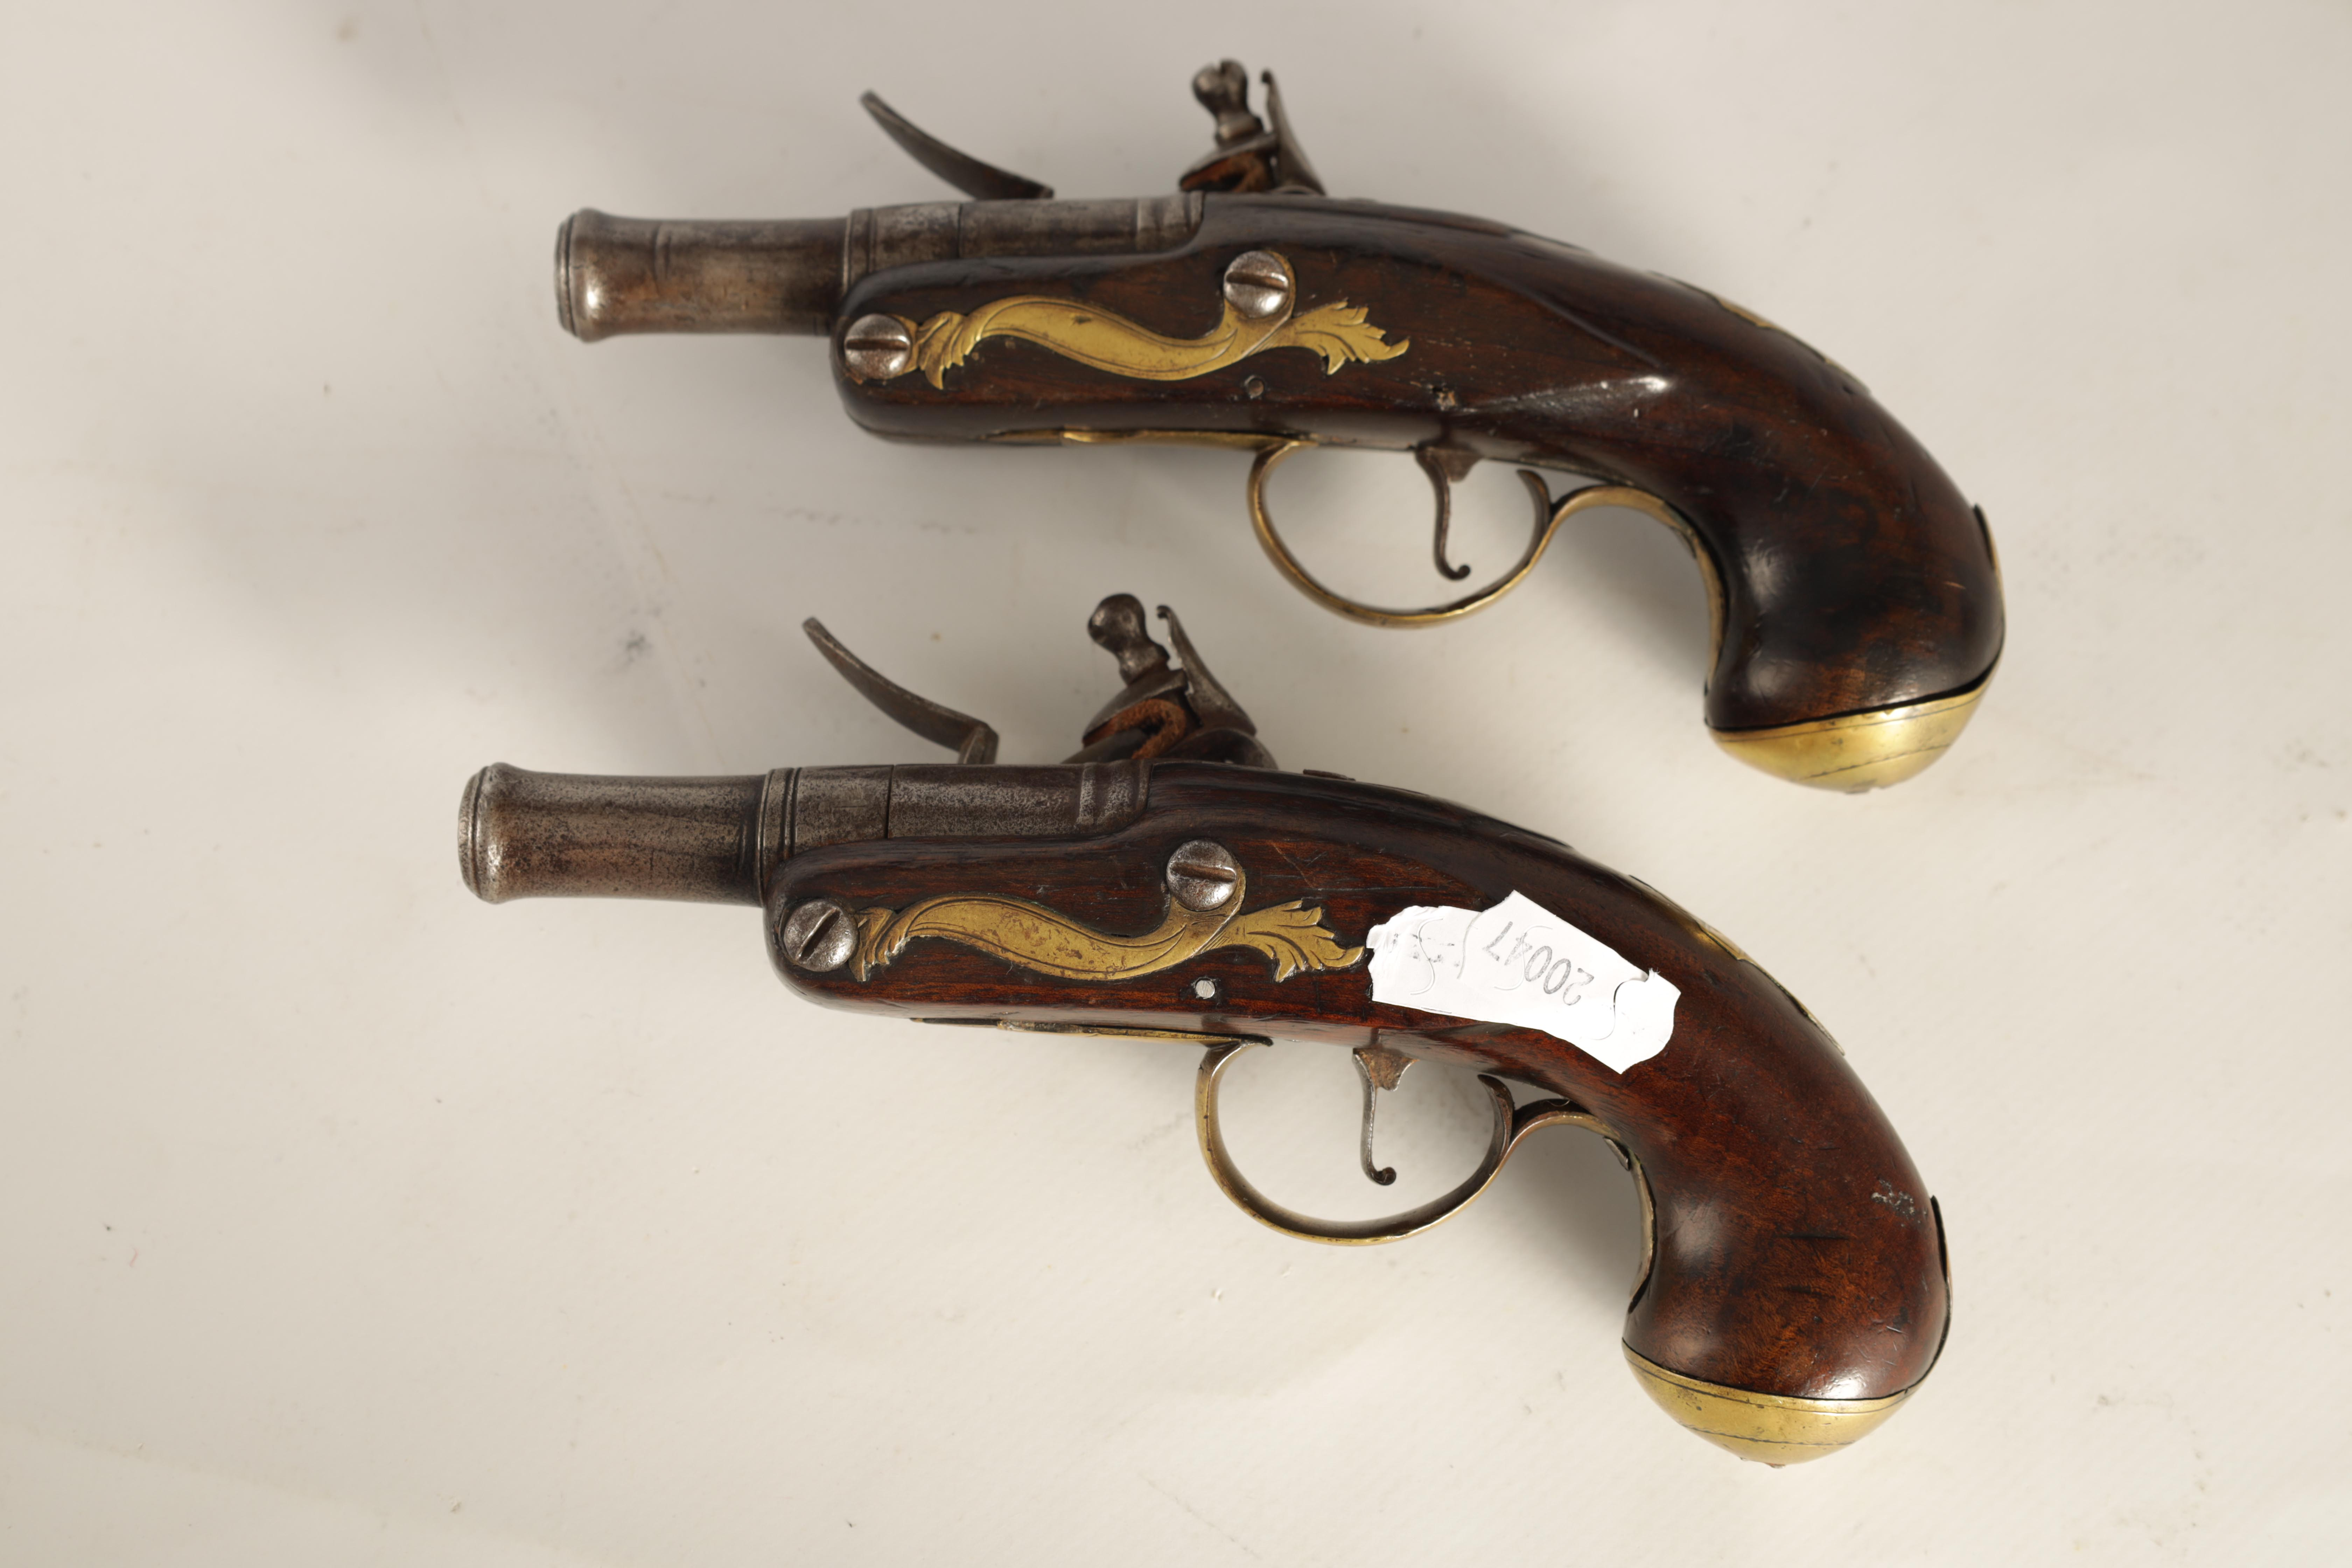 T. JONES. A PAIR OF EARLY 18TH CENTURY FLINTLOCK POCKET PISTOLS with turn-off cannon barrel, - Image 9 of 14